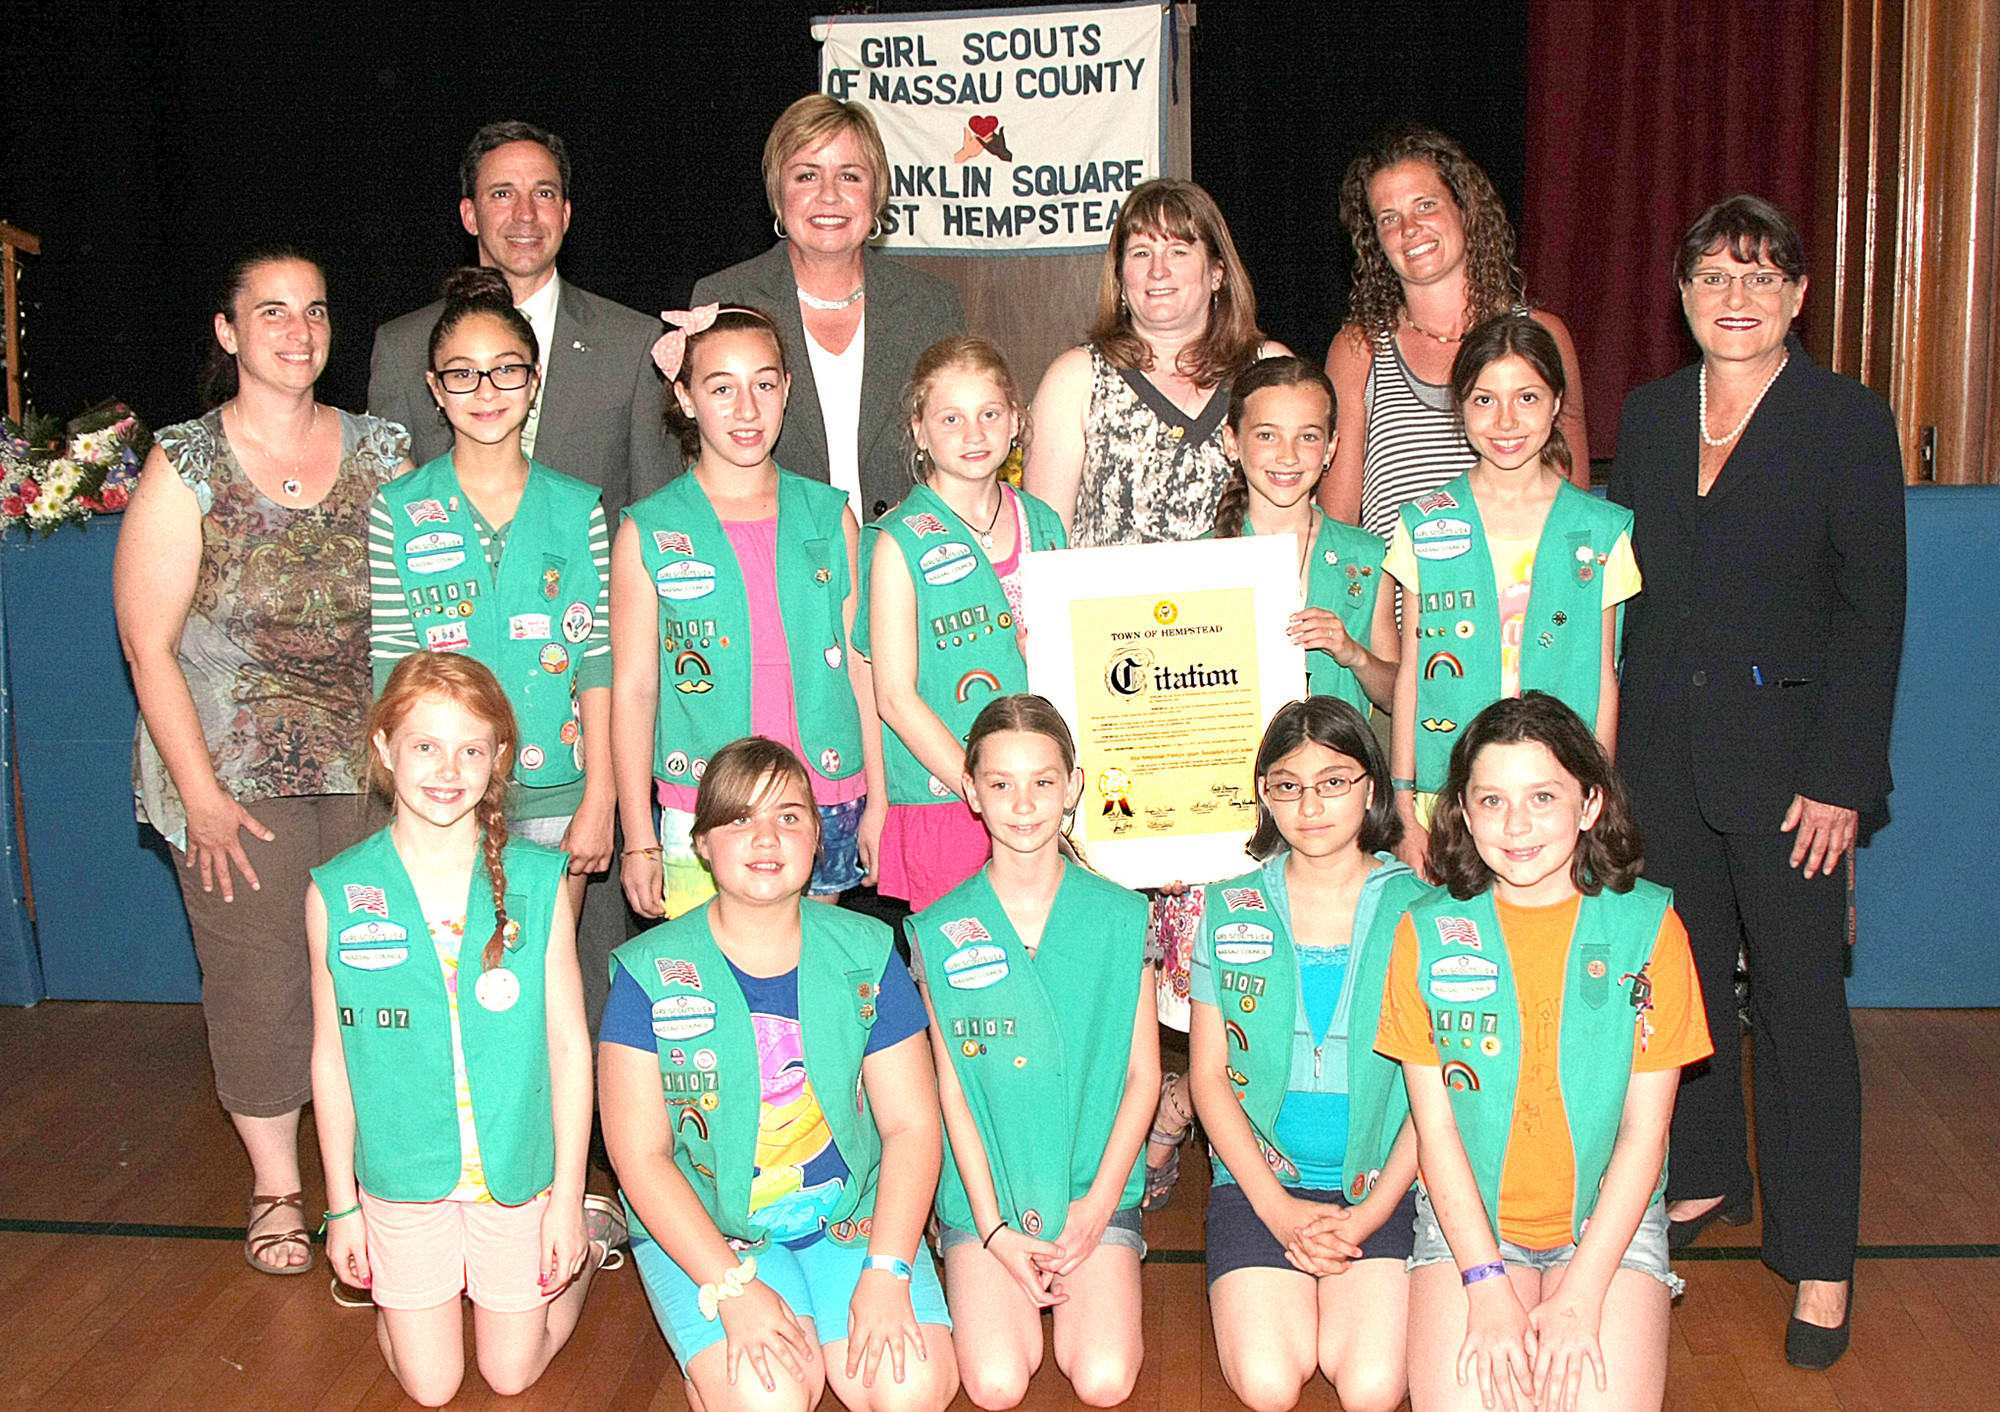 New York State Senator Jack Martins, Nassau County Clerk Maureen O'Connell, Town of Hempstead Supervisor Kate Murray congratulate Troop 1055 with the Silver Award alongside Leader Ronnie Espey.